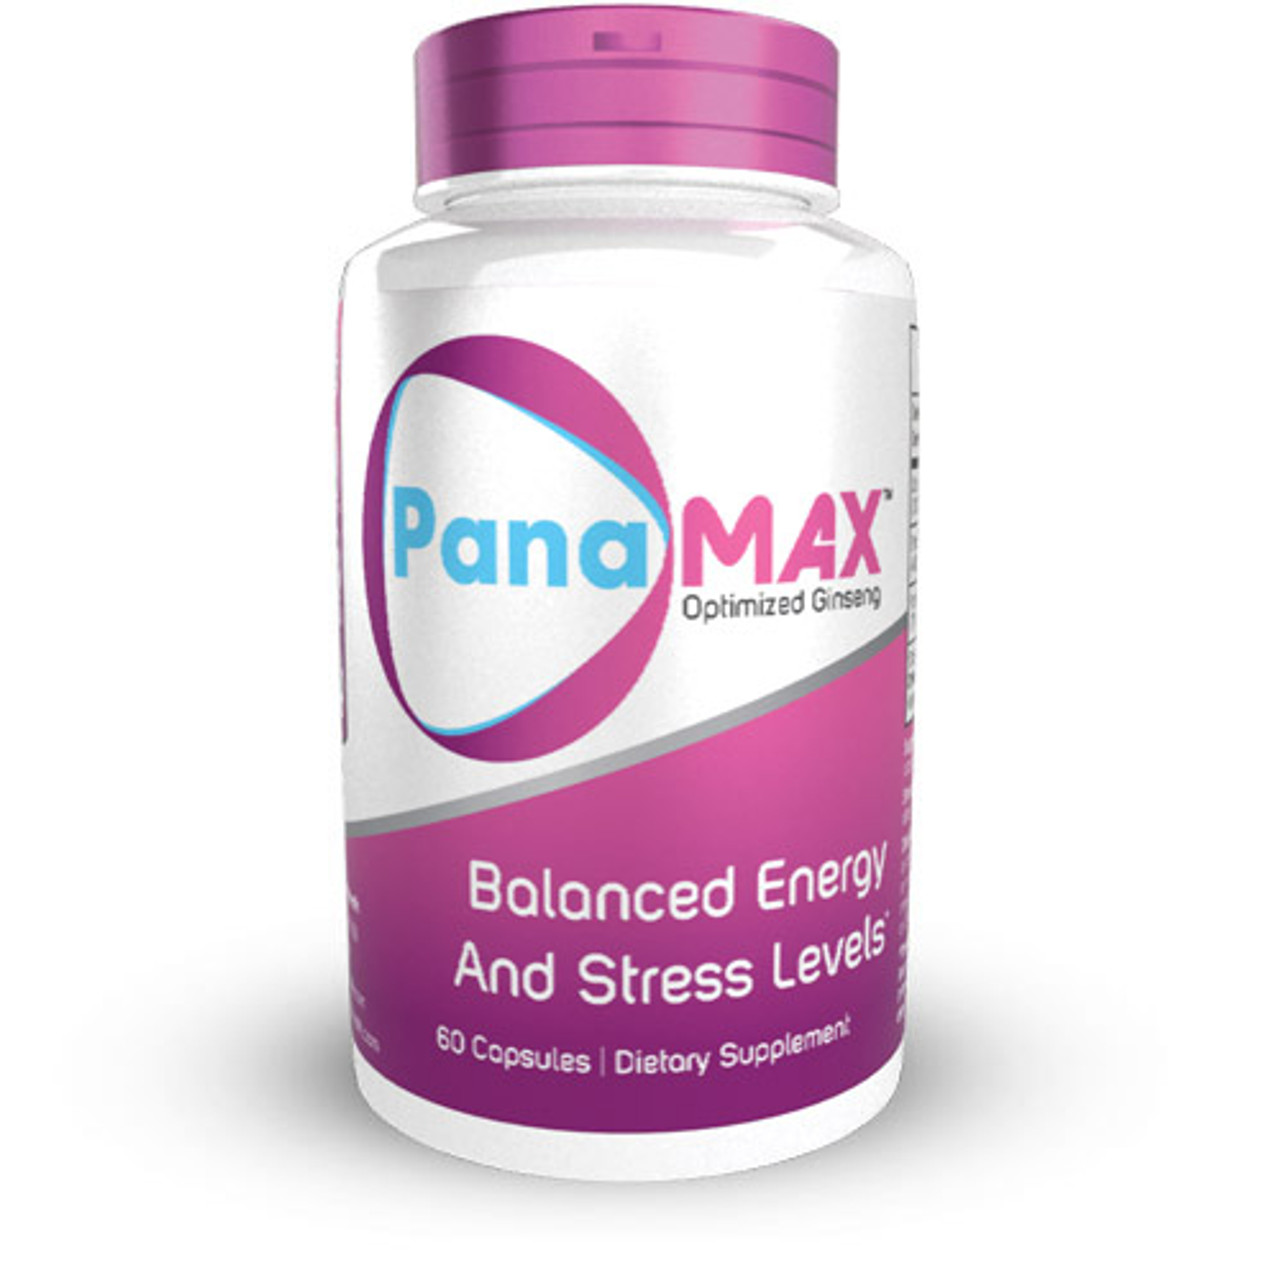 Buy PanaMAX Optimized Ginseng Capsules